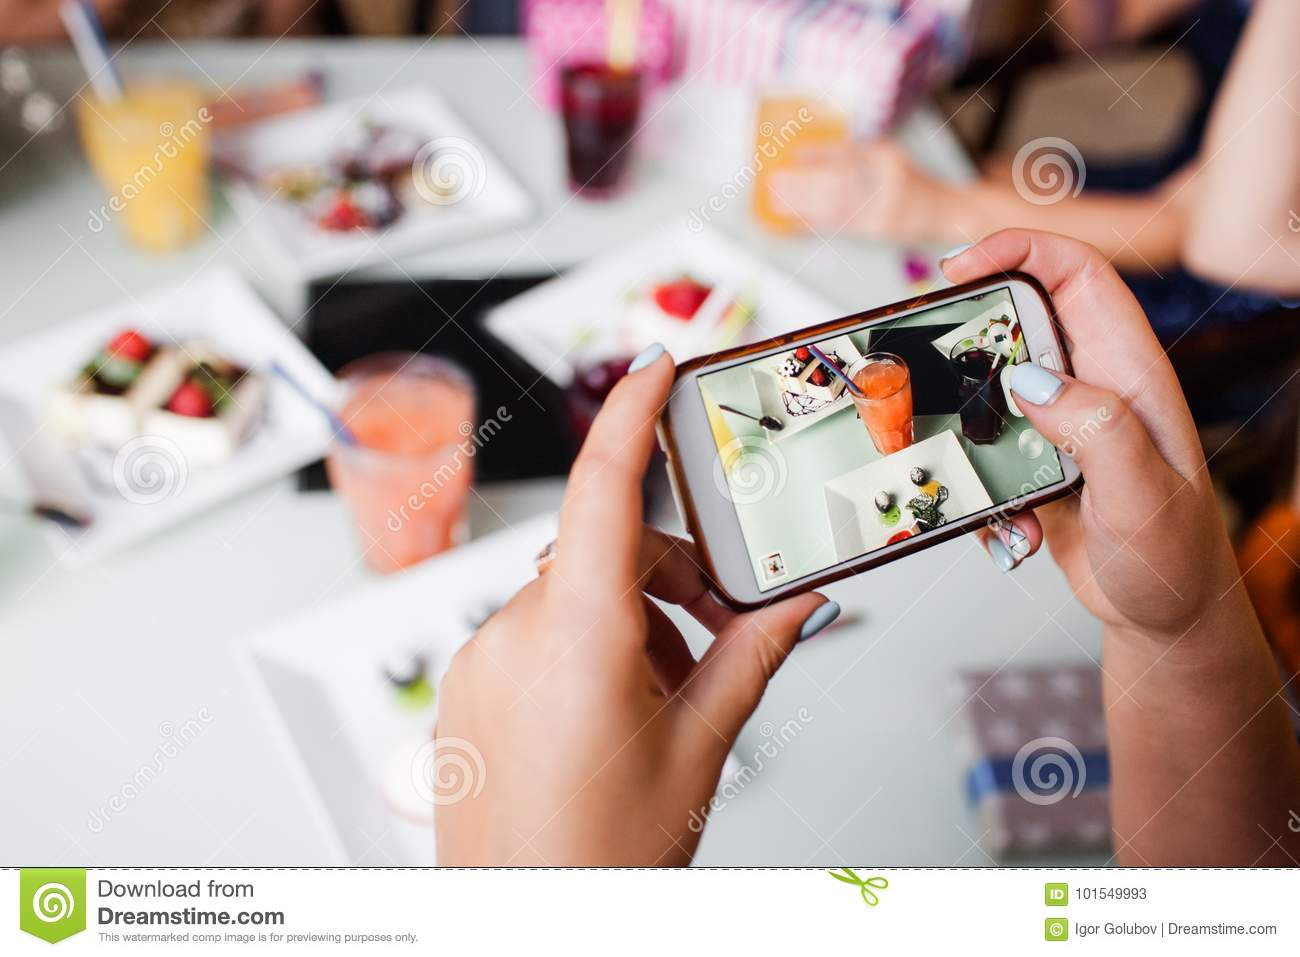 Food picture for social media. Modern lifestyle